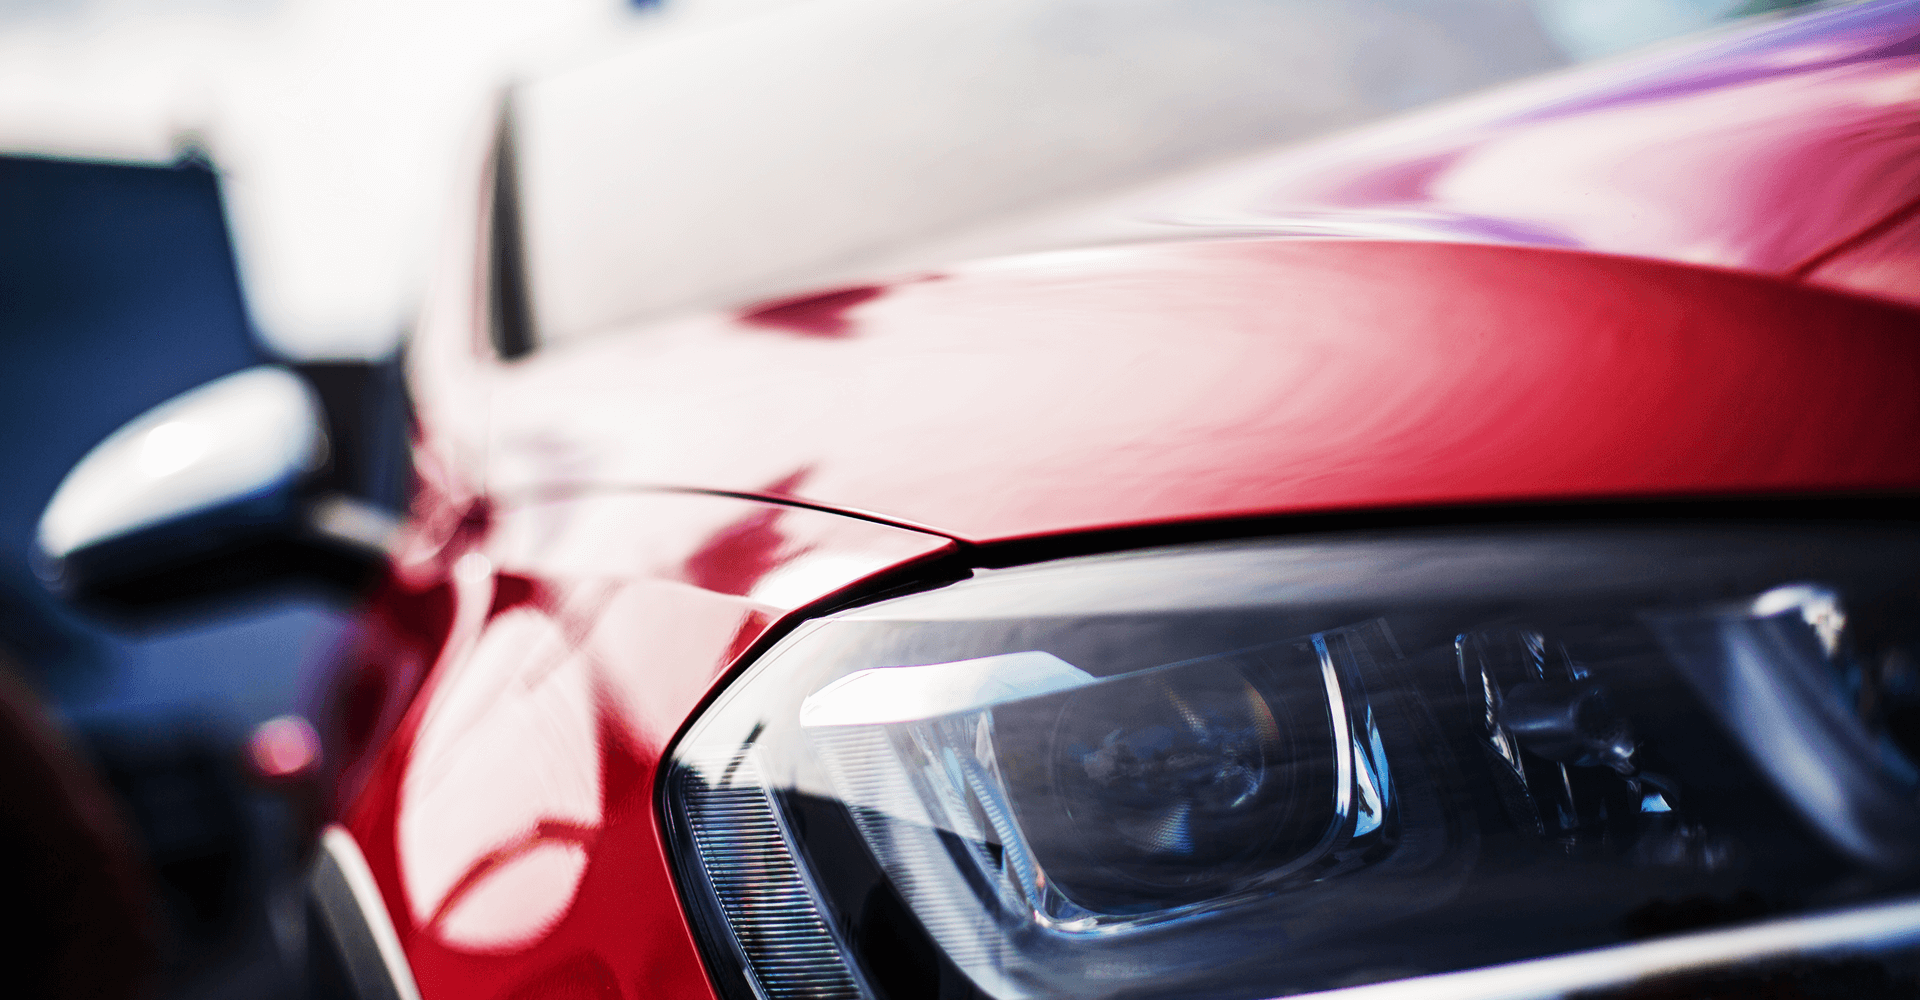 Used Cars for sale, with warranty offers and a new MOT | Hewson Motor Hub, based in market harborough, Leicestershire